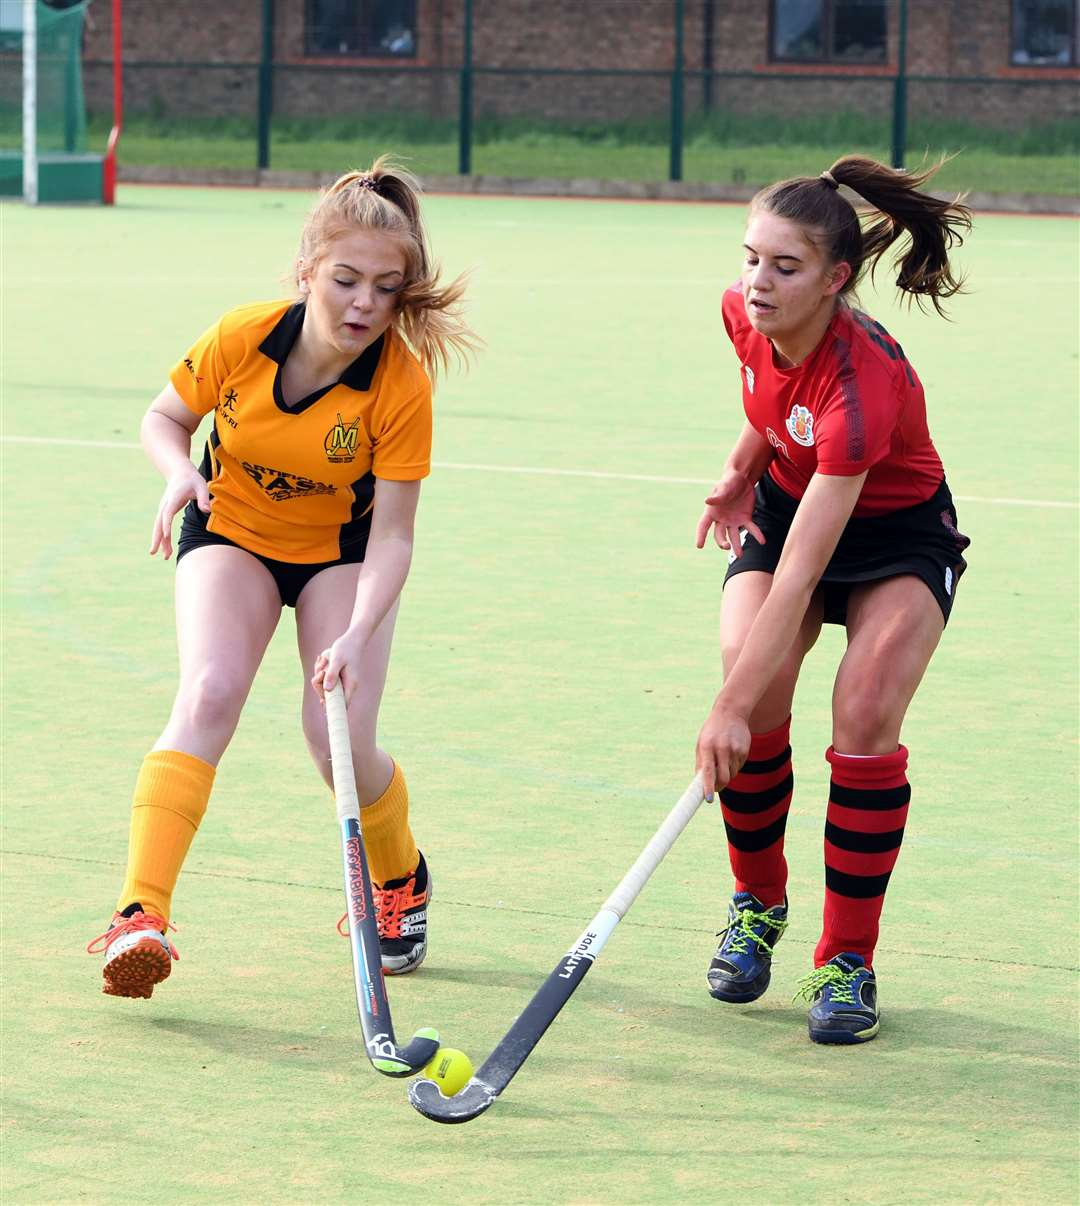 Wisbech Ladies 2nds v March 1st Hockey. (28777767)